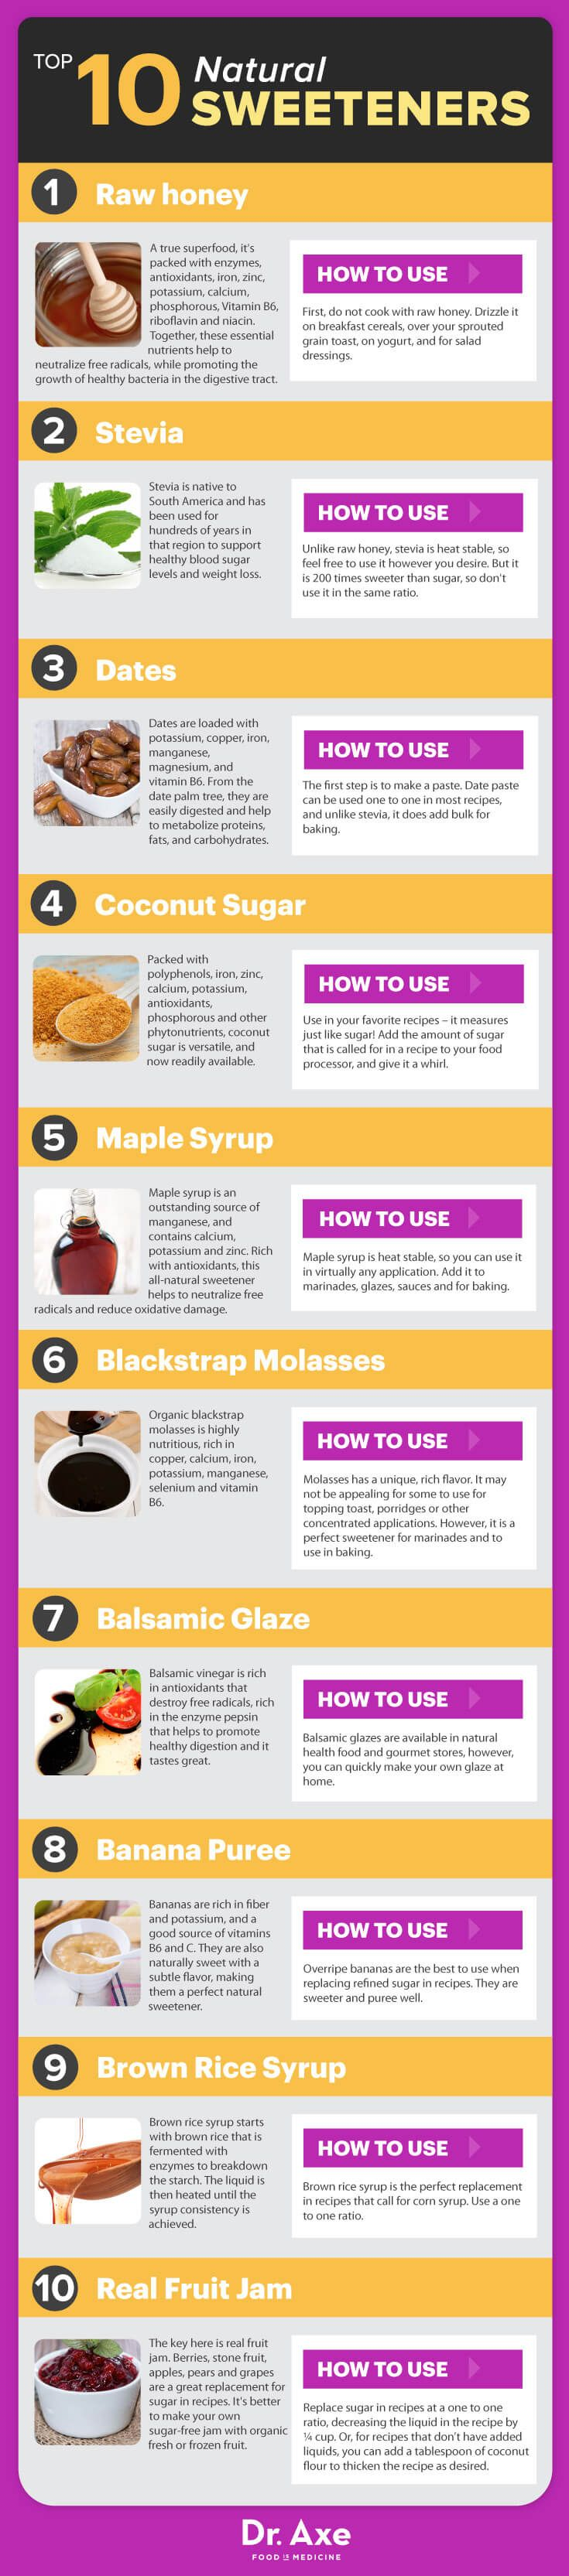 Top 10 natural sweeteners and how to use them as a sugar alternative.